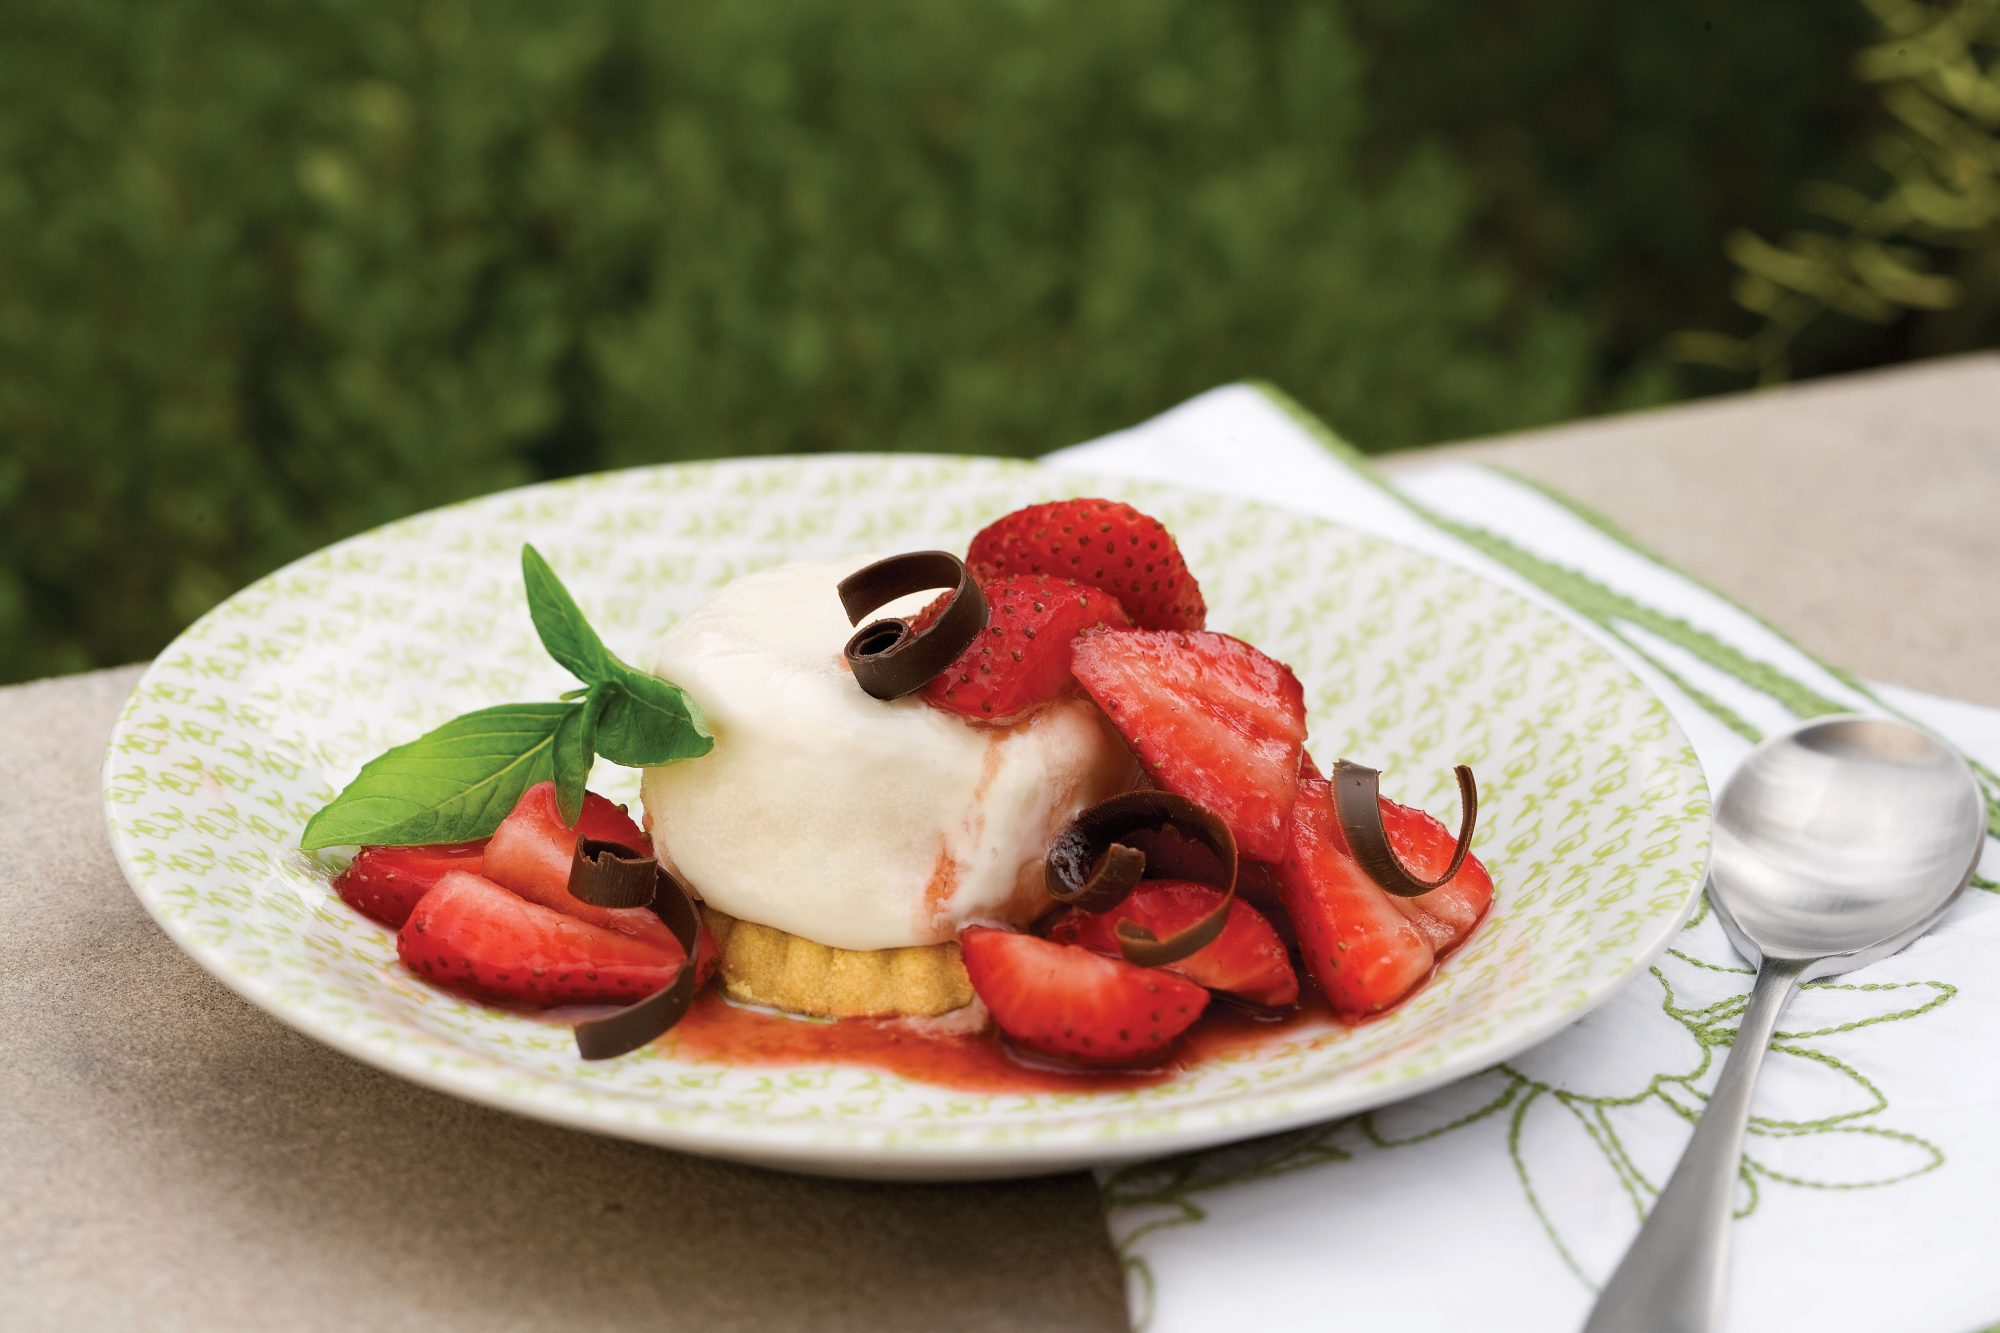 Balsamic Strawberries Recipes